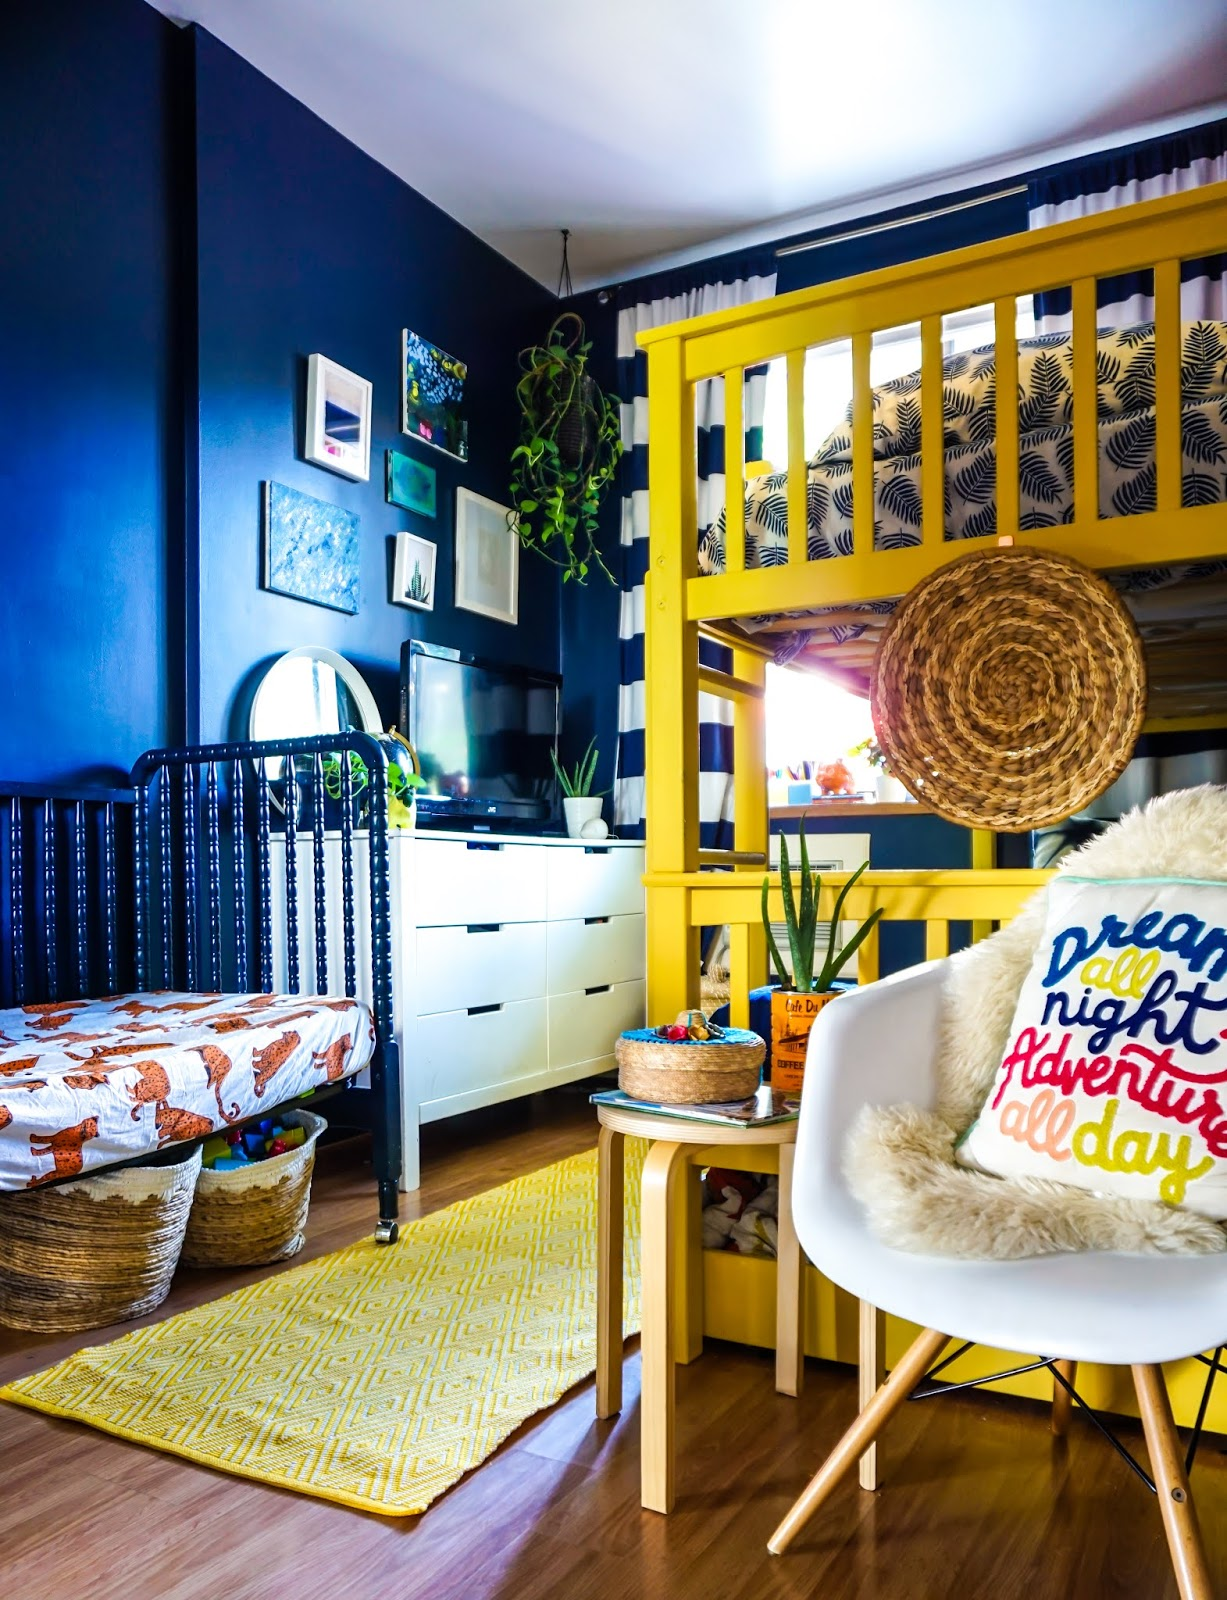 colorful kids bedroom ideas // colorful kids room // colorful boys room // colorful bohemian kids bedroom // Clare paint golden hour // clare paint goodnight moon // best paint for kids bedroom // non-voc paint clare // boho kids room // tropical inspired kids bedroom // tropical inspired boys room // Hawaii inspired boys room // bohemian kids room decor // colorful kids room inspo // yellow bunk bed // navy blue walls bedroom // boho kids bedroom //  colorful boho kids room inspo // navy striped curtains // colorful bunk beds // tropical kids bedroom ideas // Hawaii inspired kids bedroom